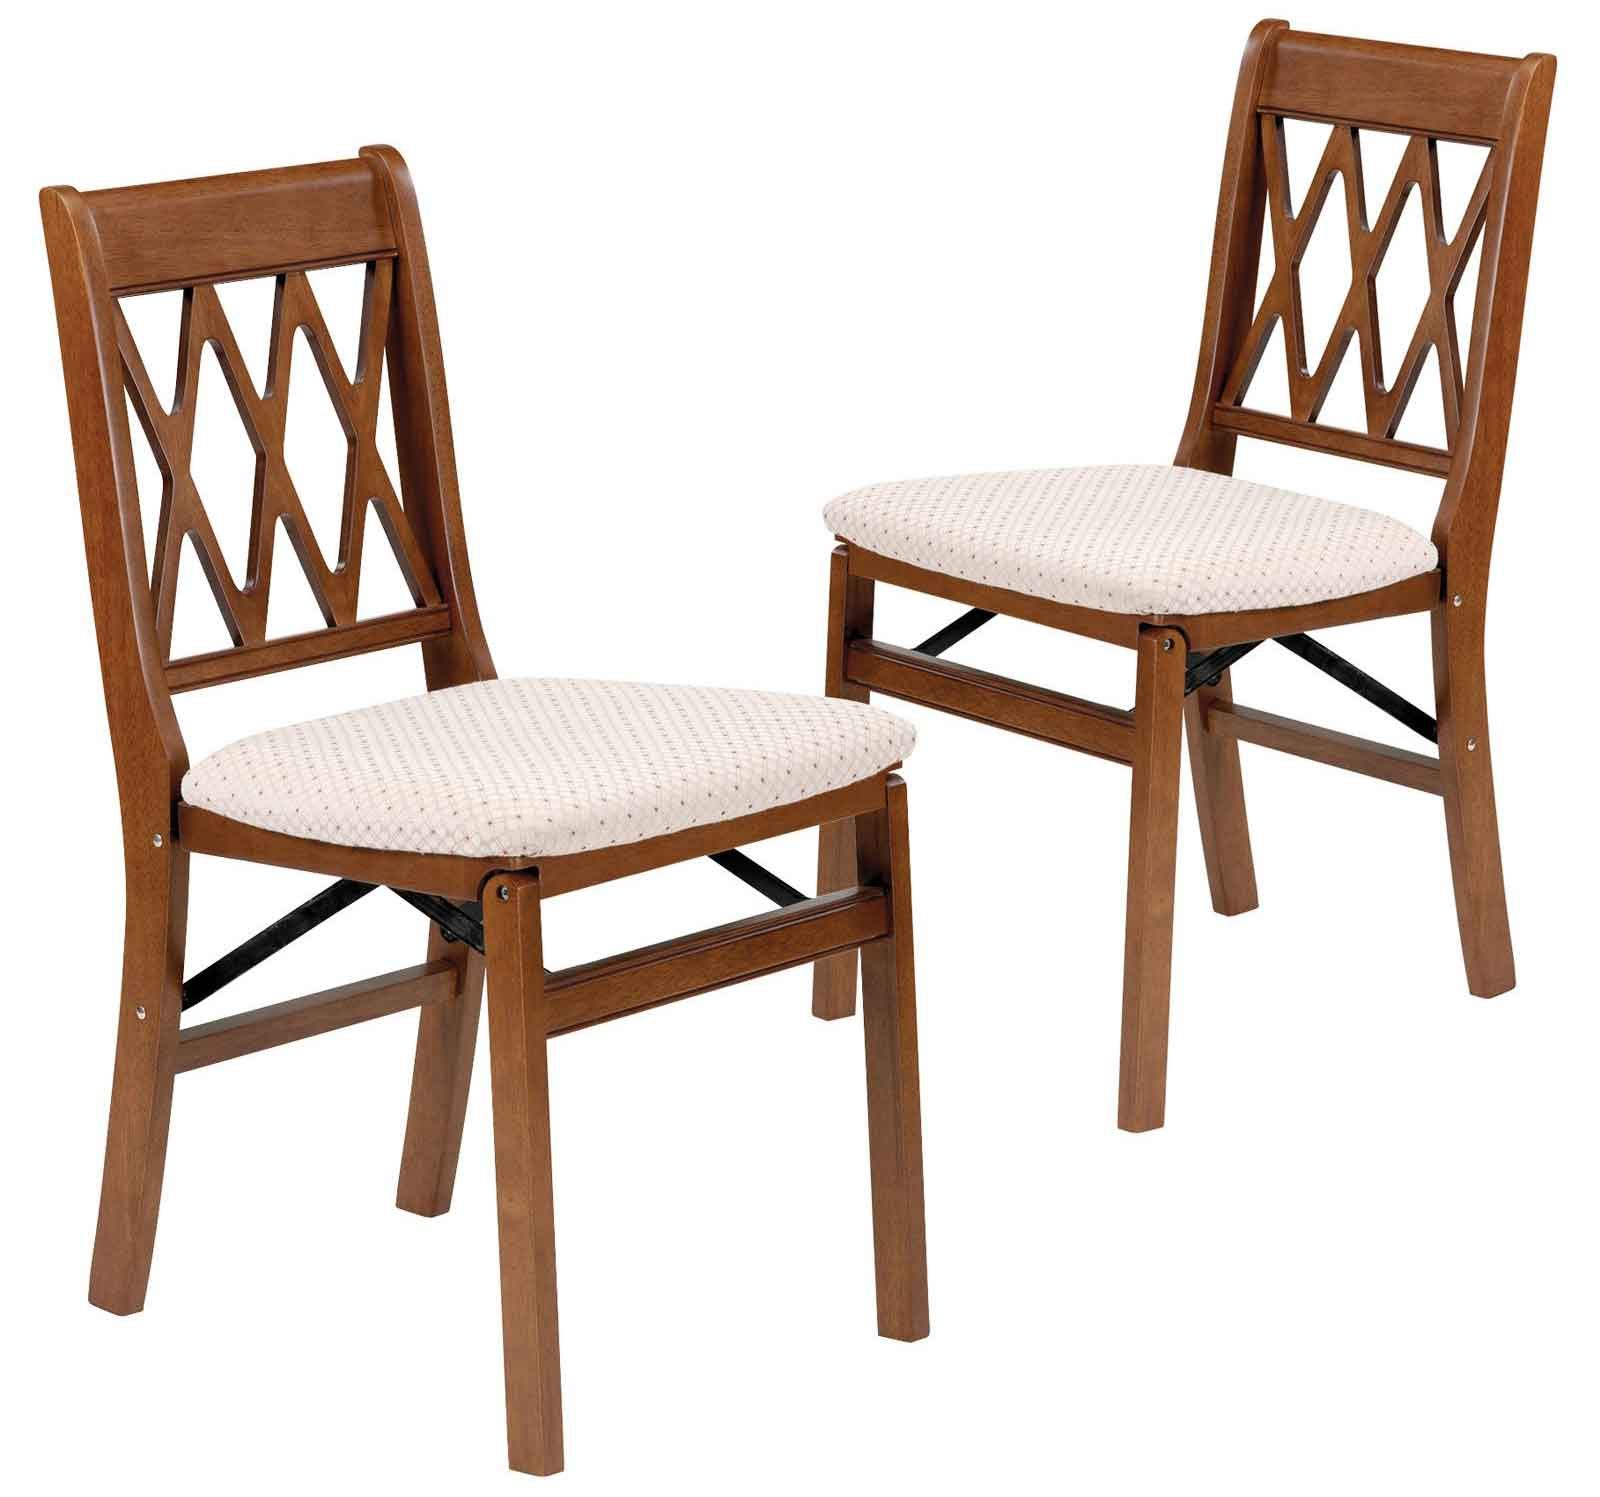 Wooden chairs furniture designs.